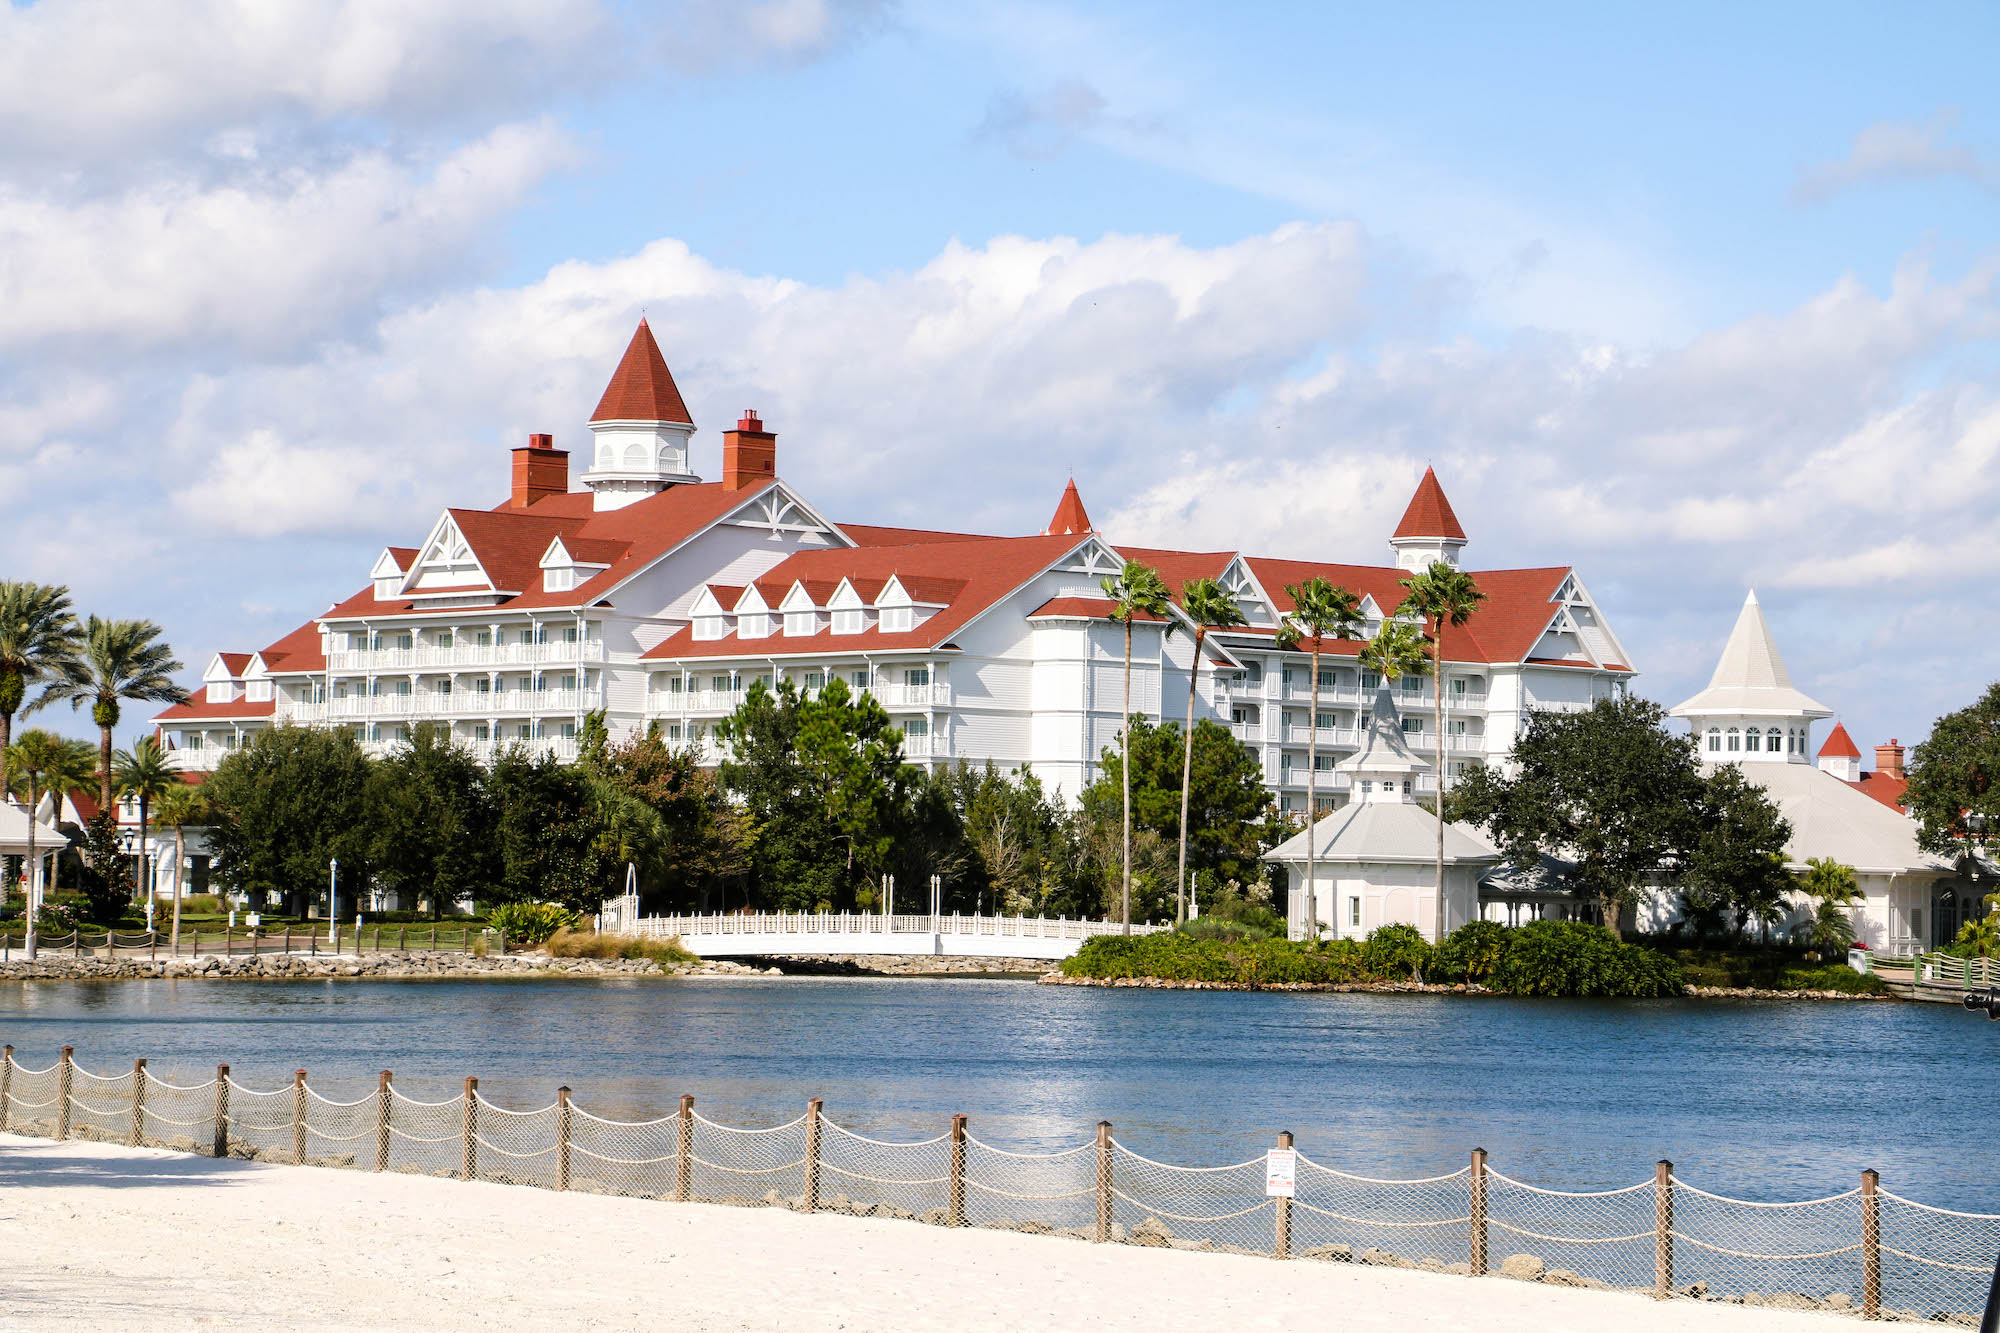 Disney DVC Grand Floridian exterior view